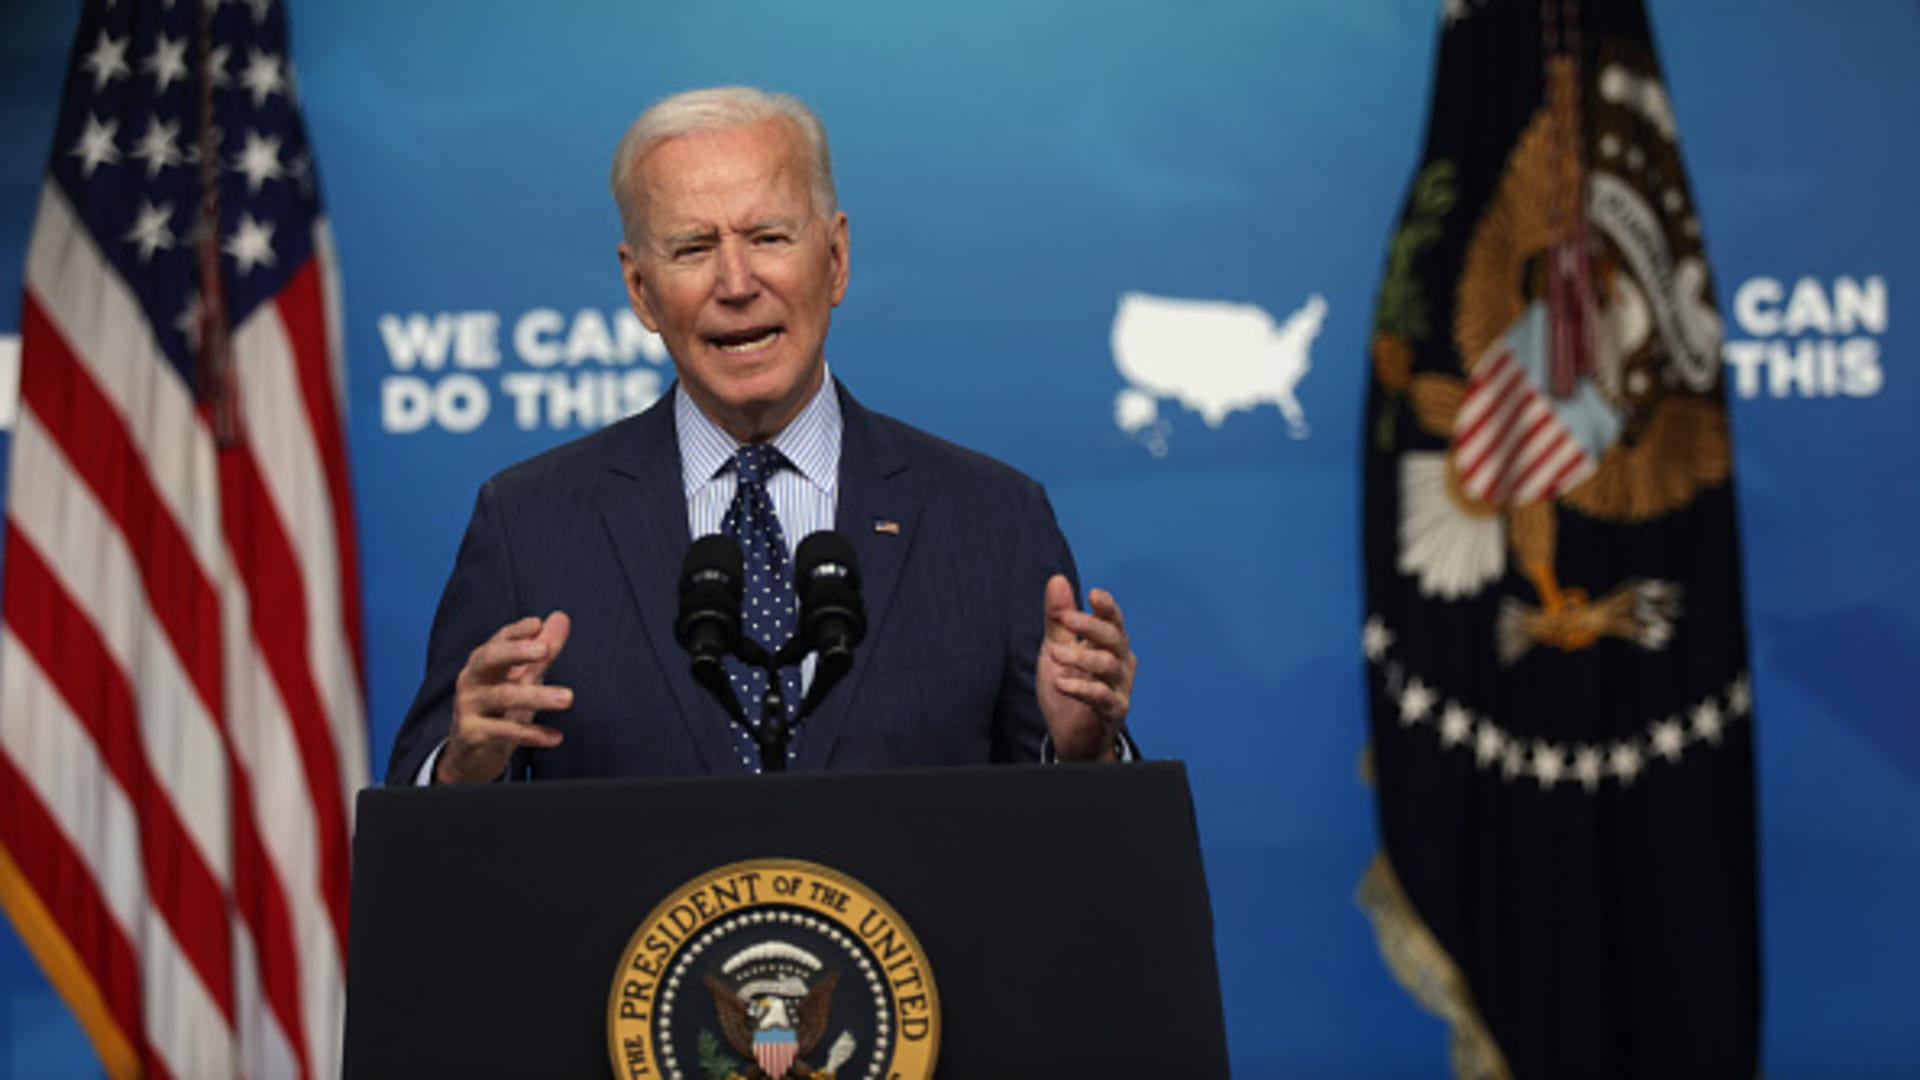 U.S. President Joe Biden speaks during an event in the South Court Auditorium of the White House June 2, 2021 in Washington, DC.